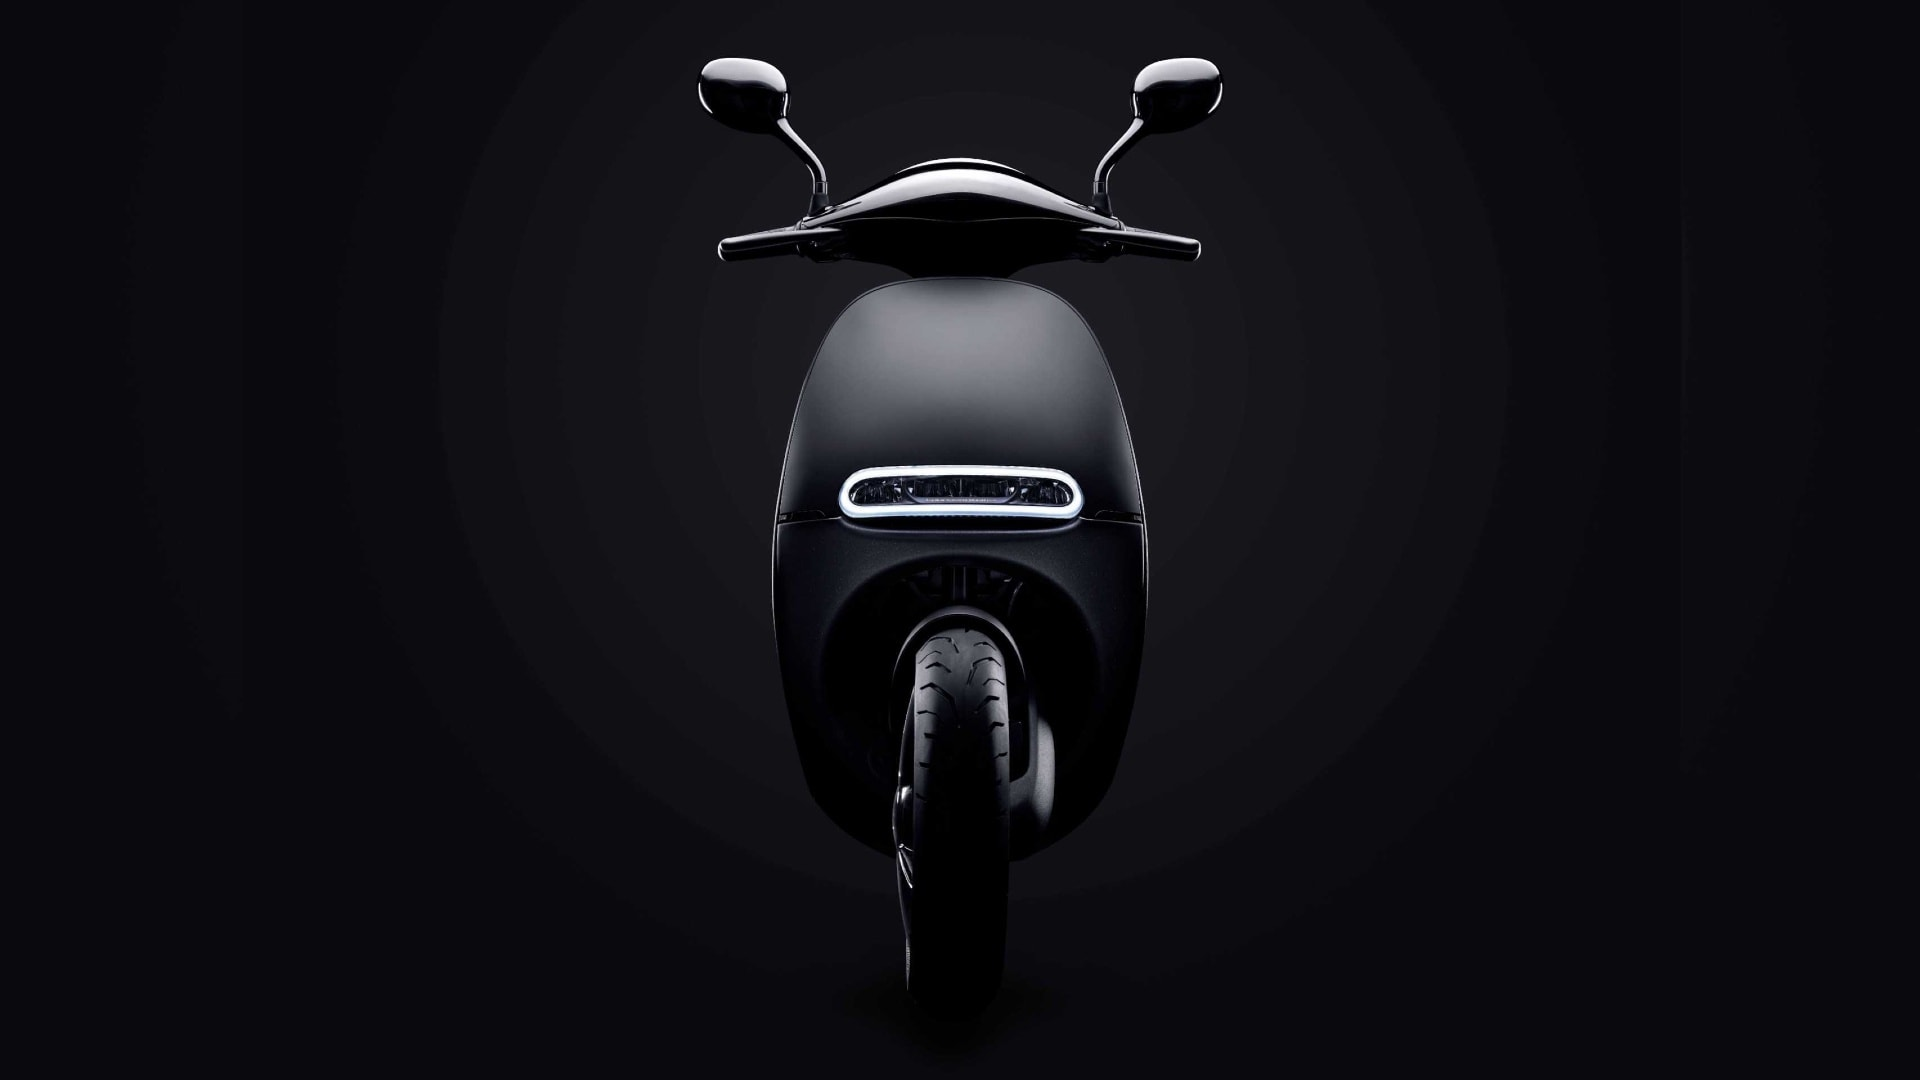 Hero MotoCorp will launch Gogoro's electric scooters with its own branding in India. Image: Gogoro